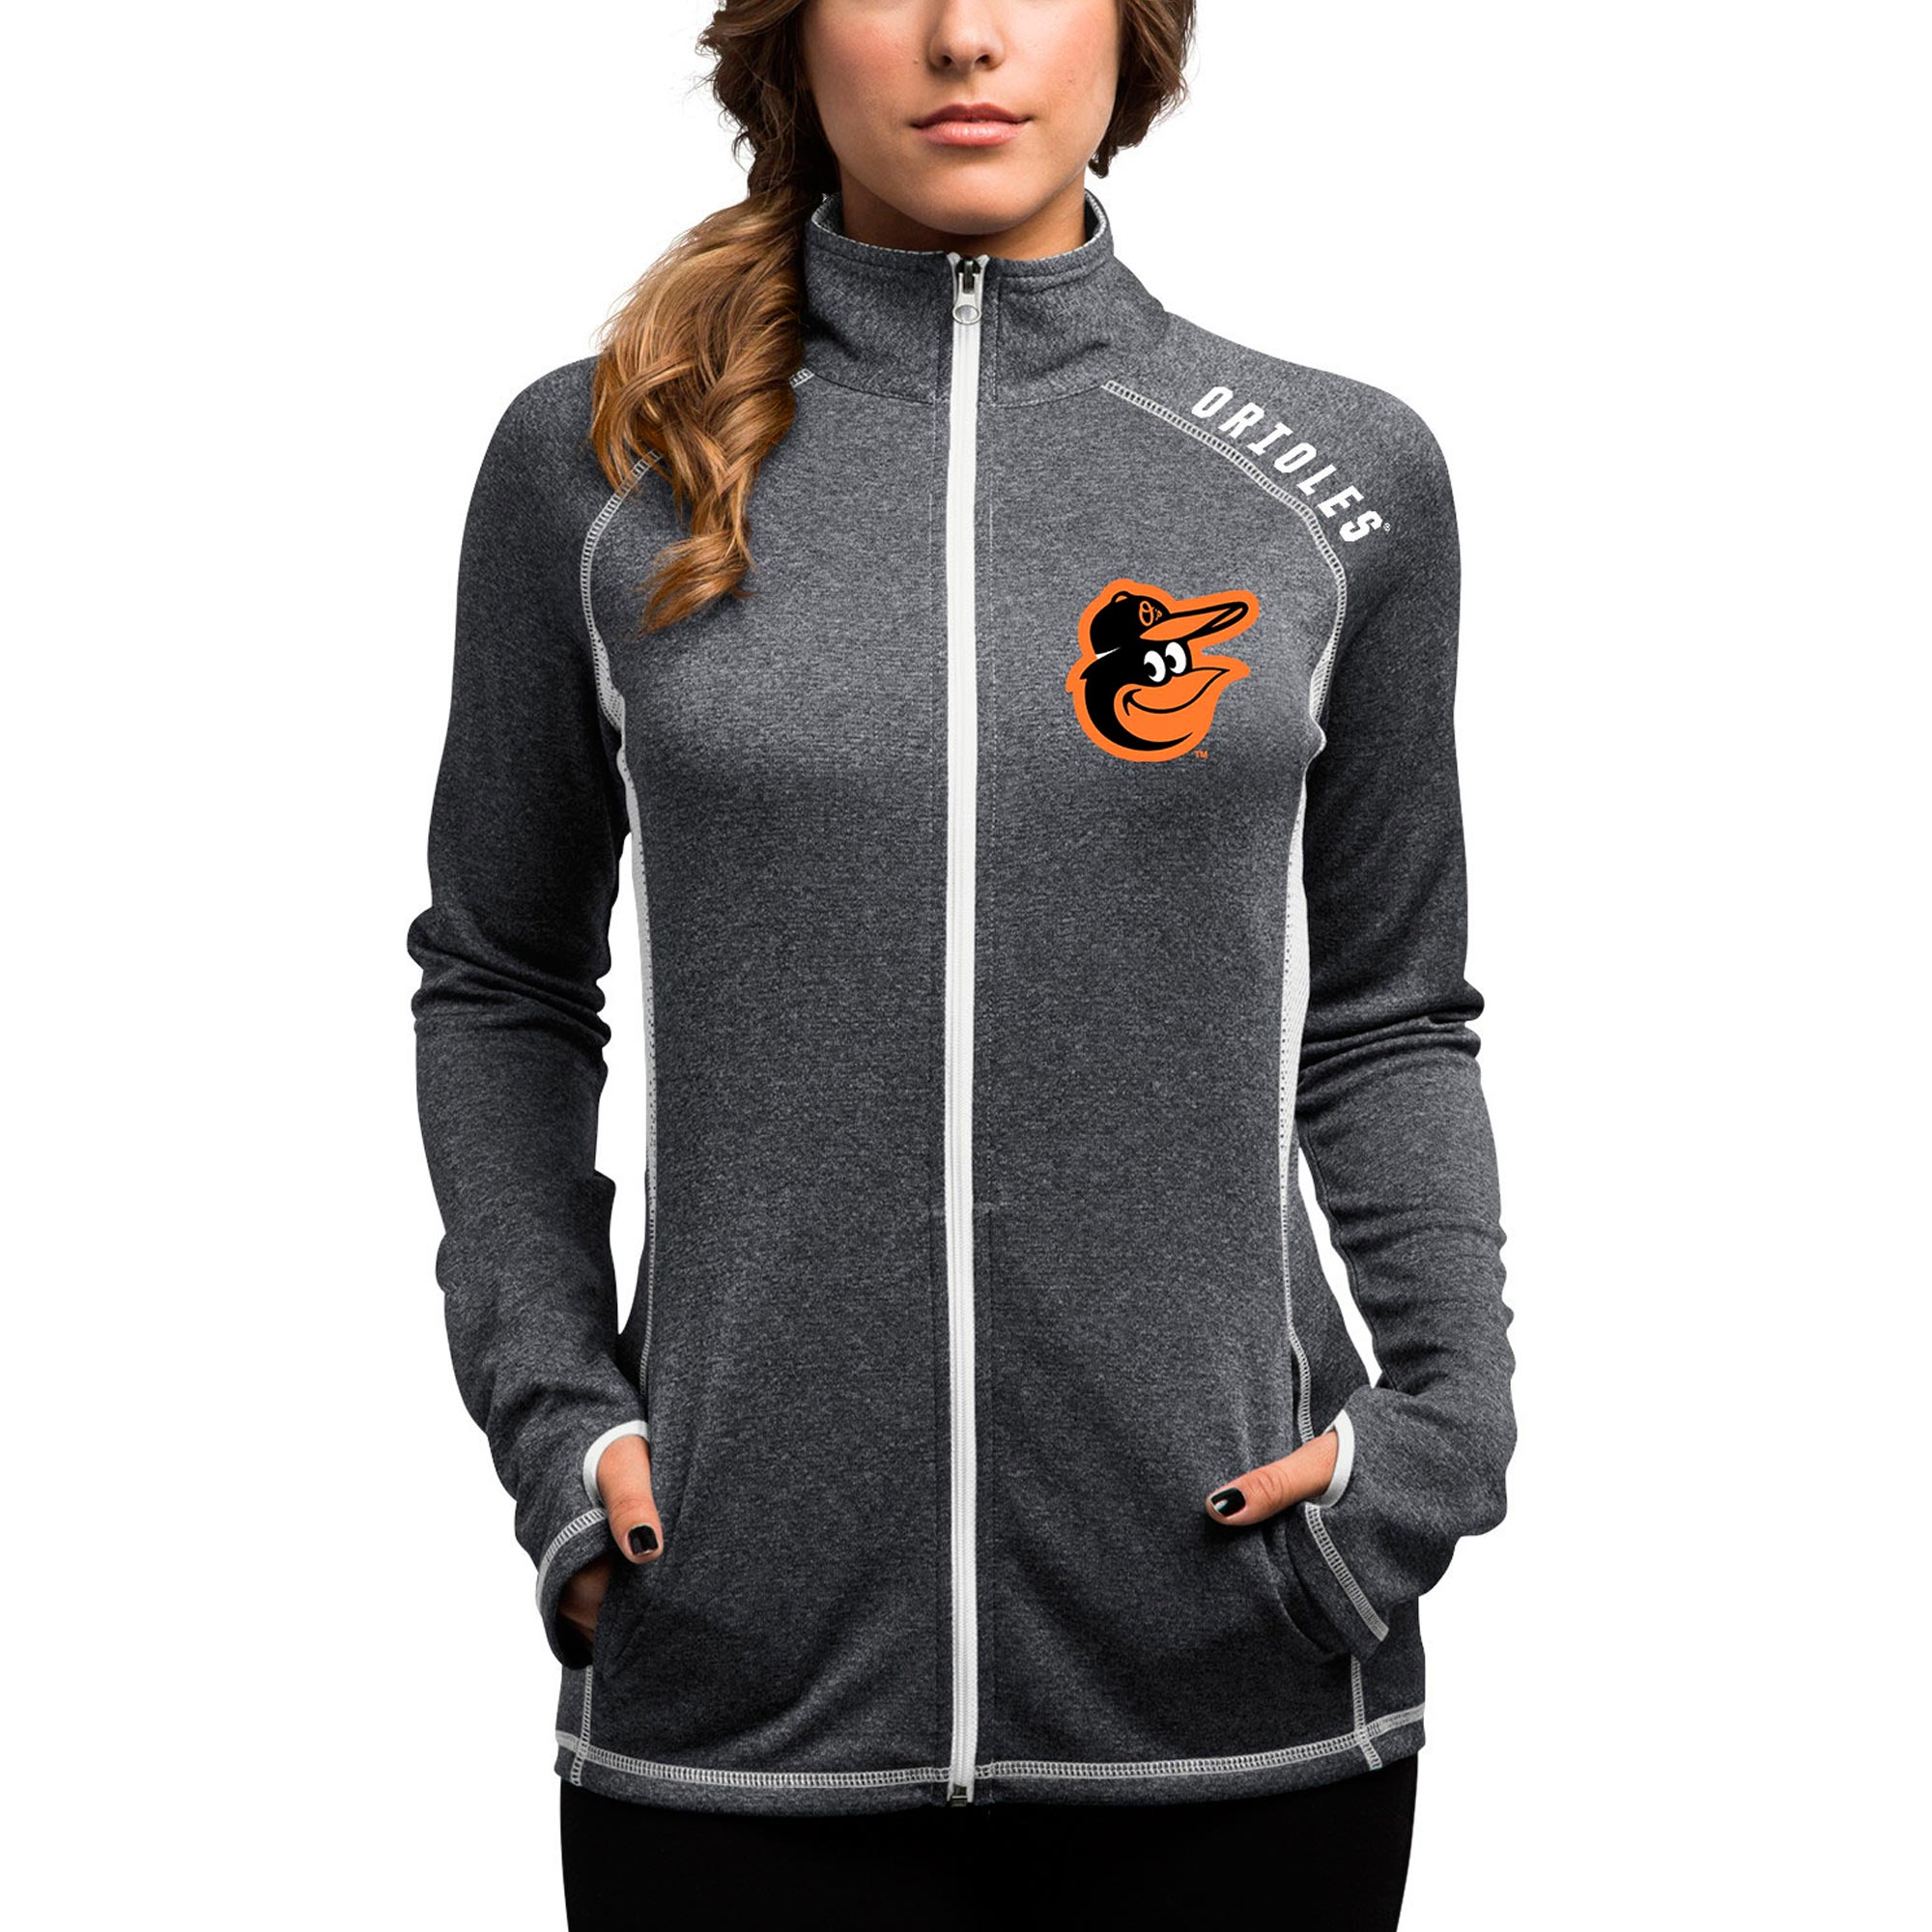 Women's Majestic Charcoal Baltimore Orioles Dream of Victory Therma Base Full-Zip Jacket by MAJESTIC LSG